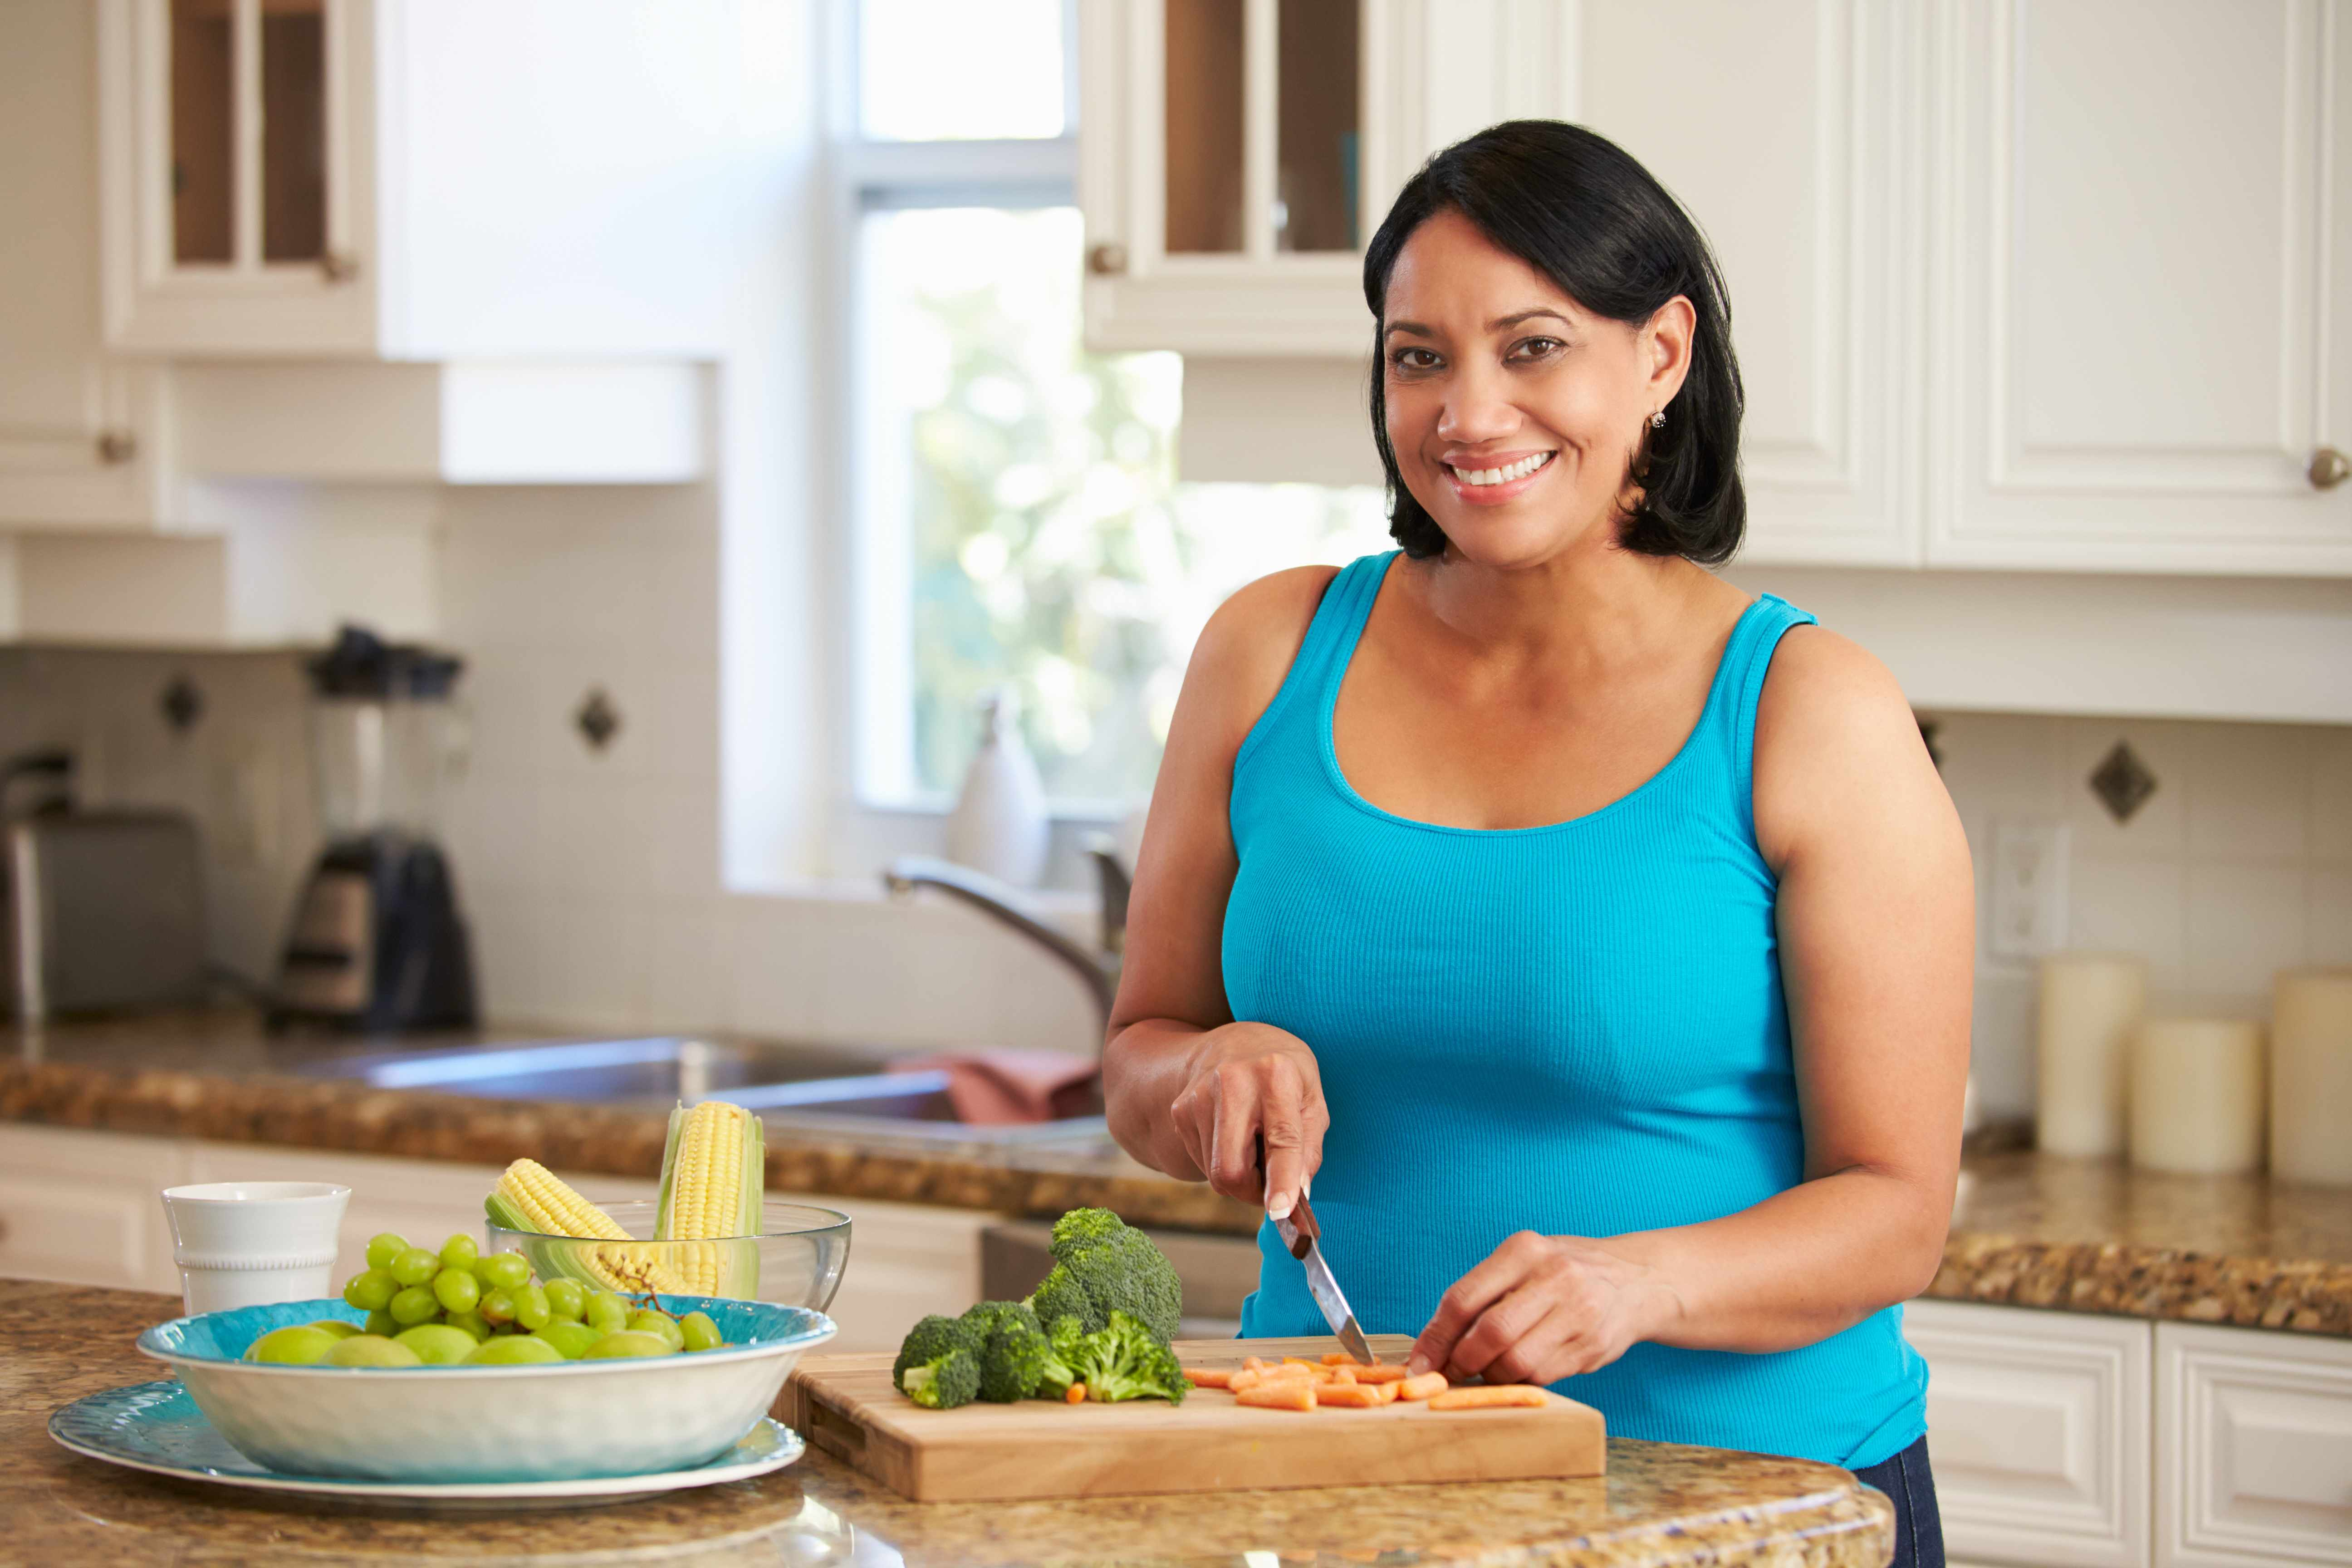 a smiling, overweight middle-aged woman preparing food in a kitchen